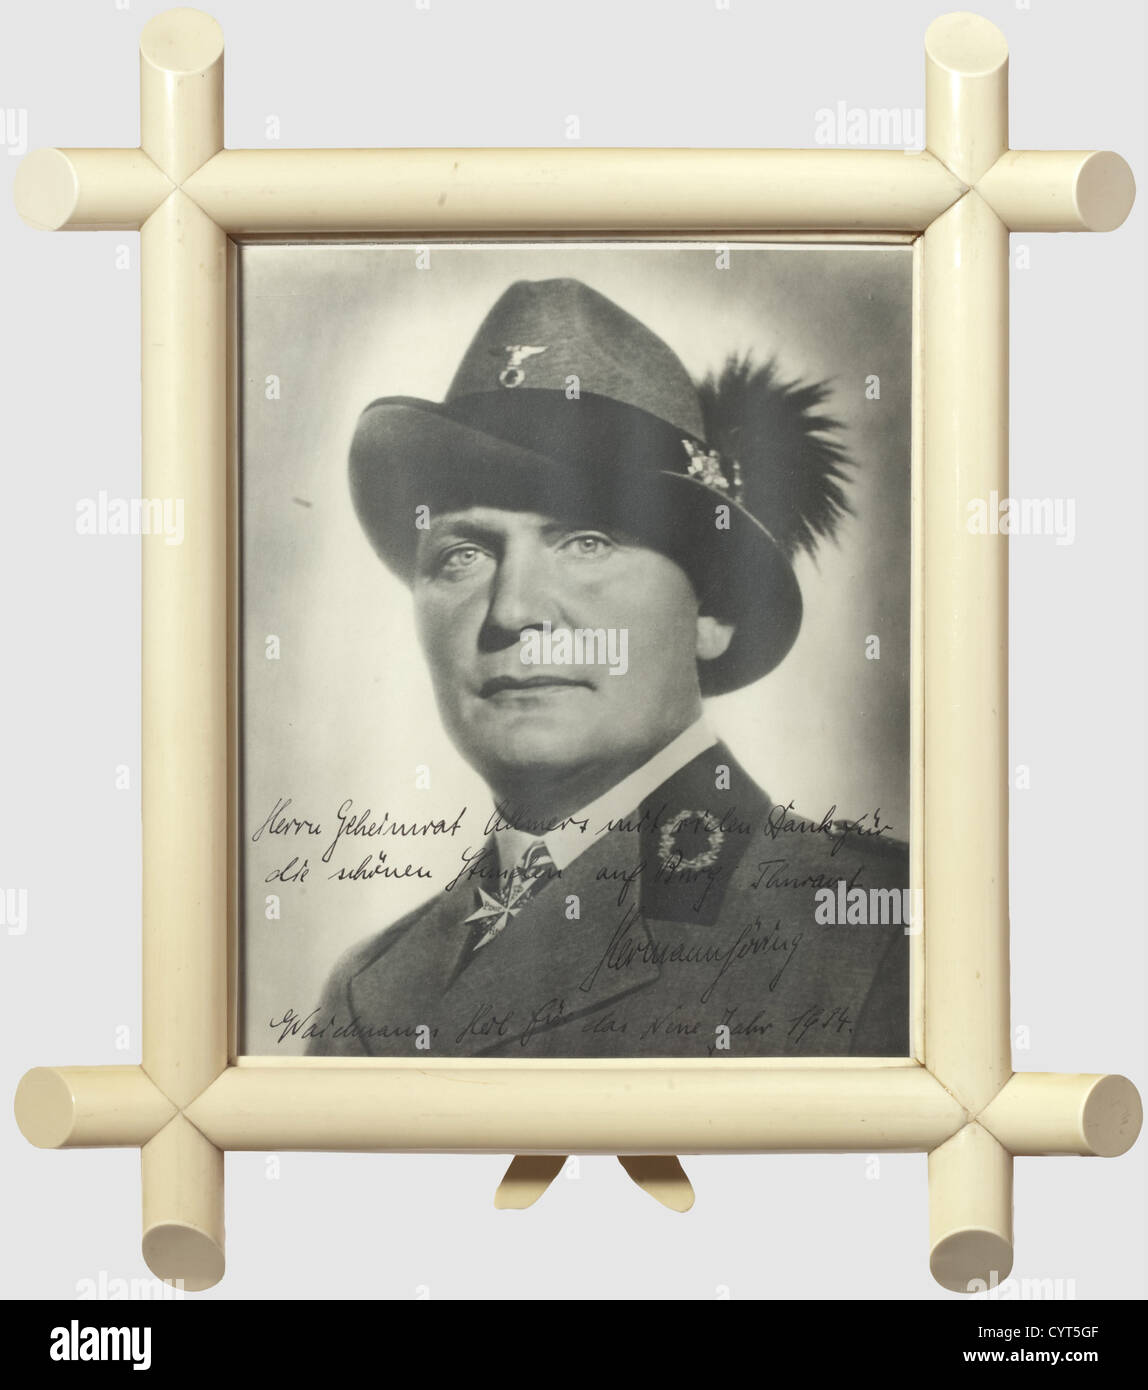 Hermann Göring, a large format photo dedicated to Privy Councillor Robert Allmers 1933/34 A portrait photograph - Stock Image